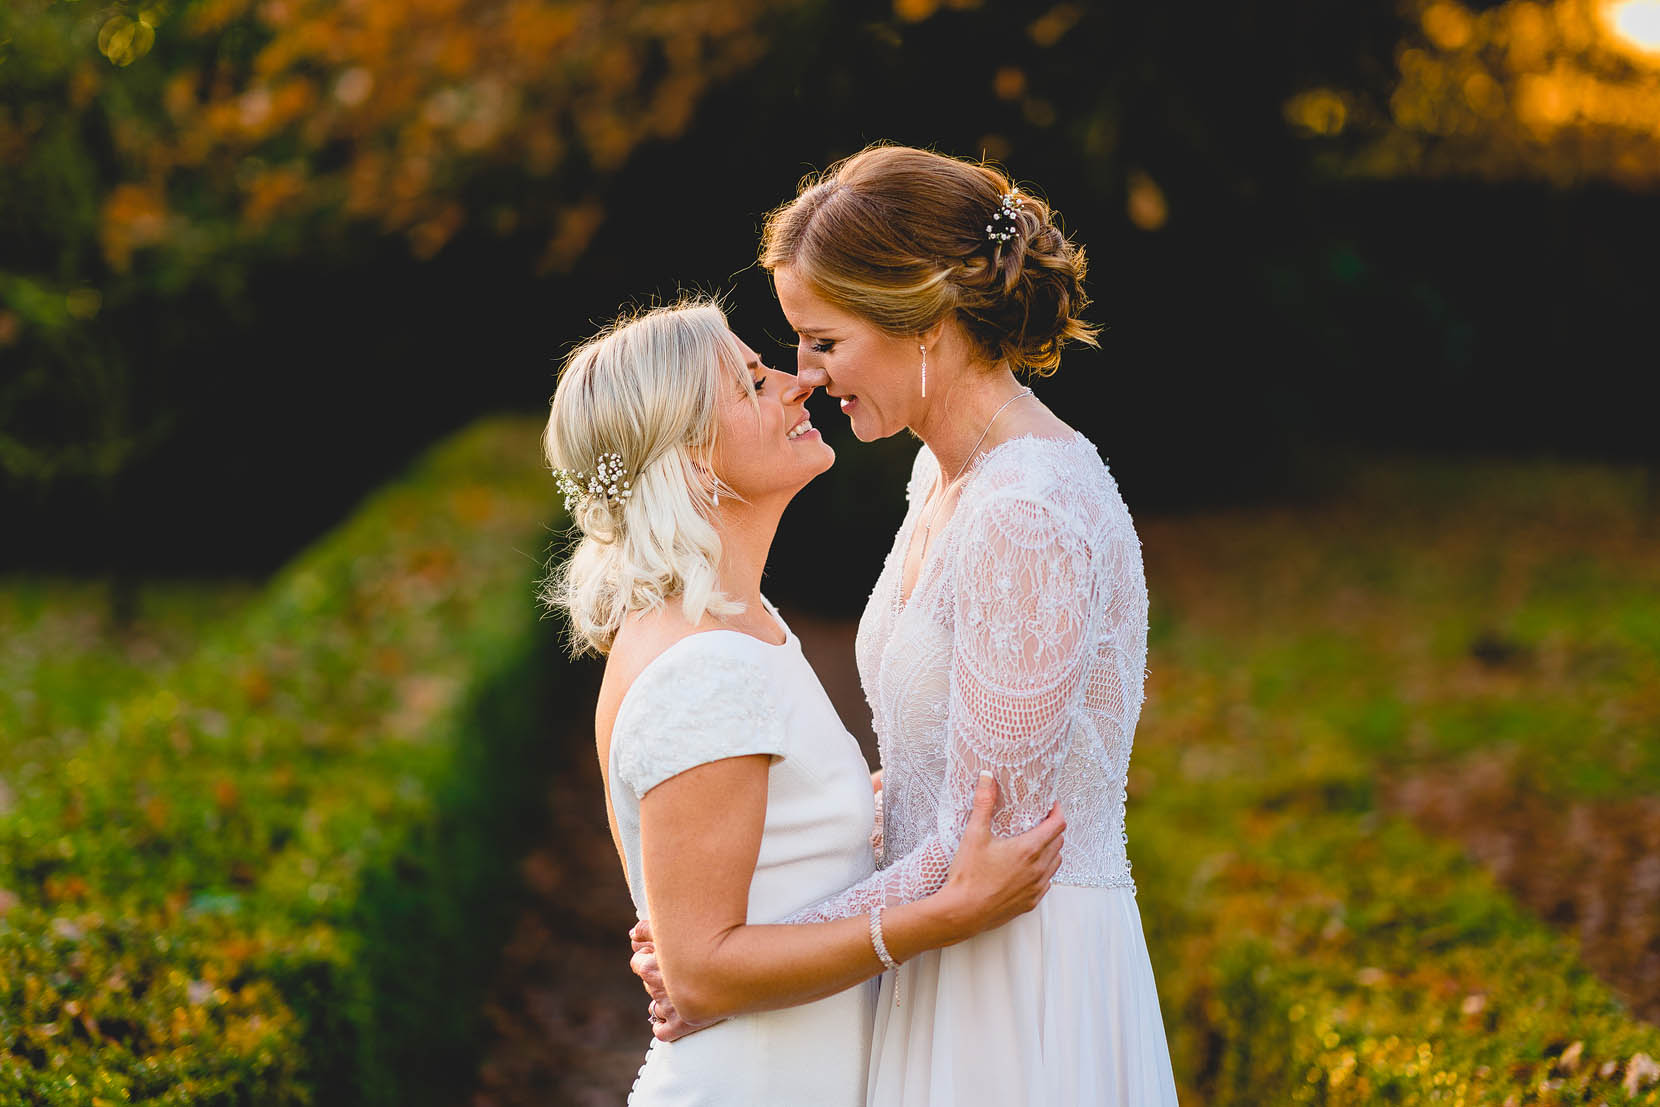 vaila and annica share a kiss at their same sex wedding at southwood hall in norfolk